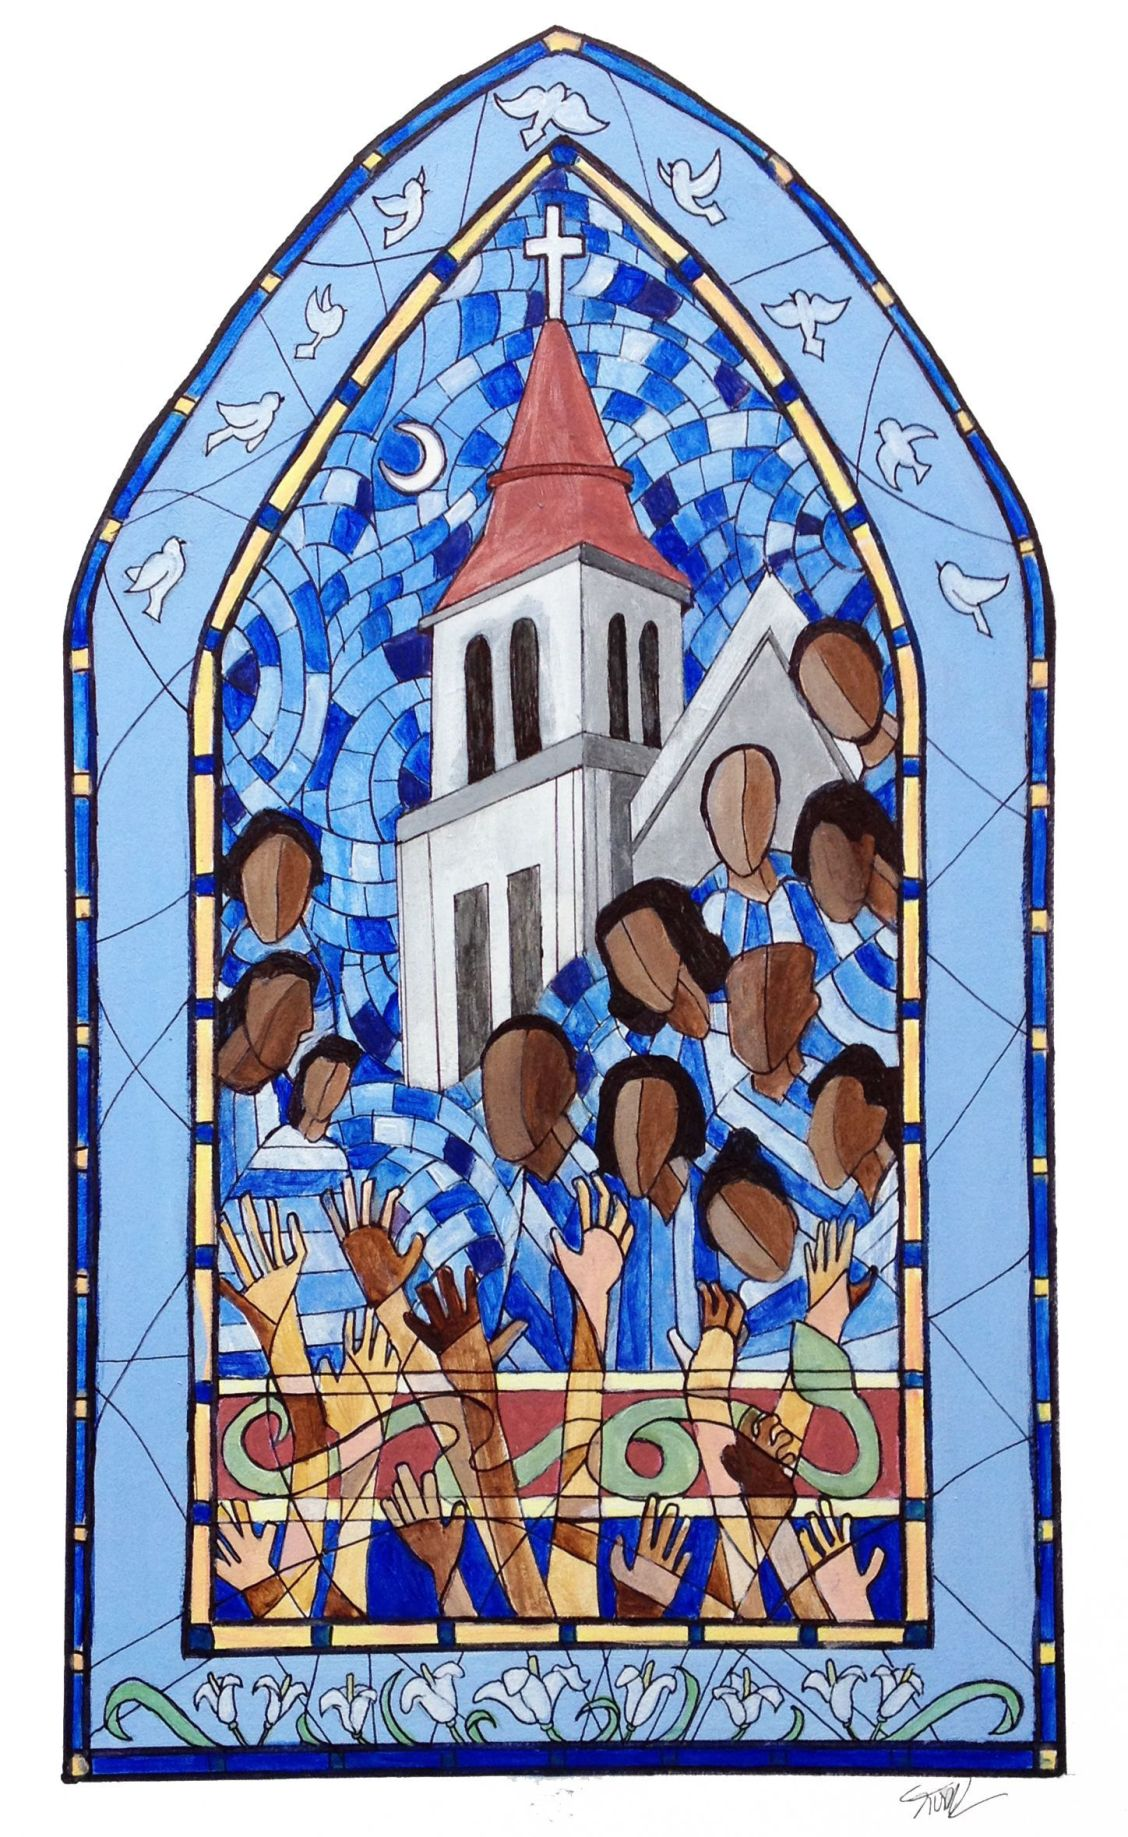 Grief & Hope Art created in wake of Emanuel tragedy Benefit concert to aid Emanuel AME Church Community United sets fundraiser for families